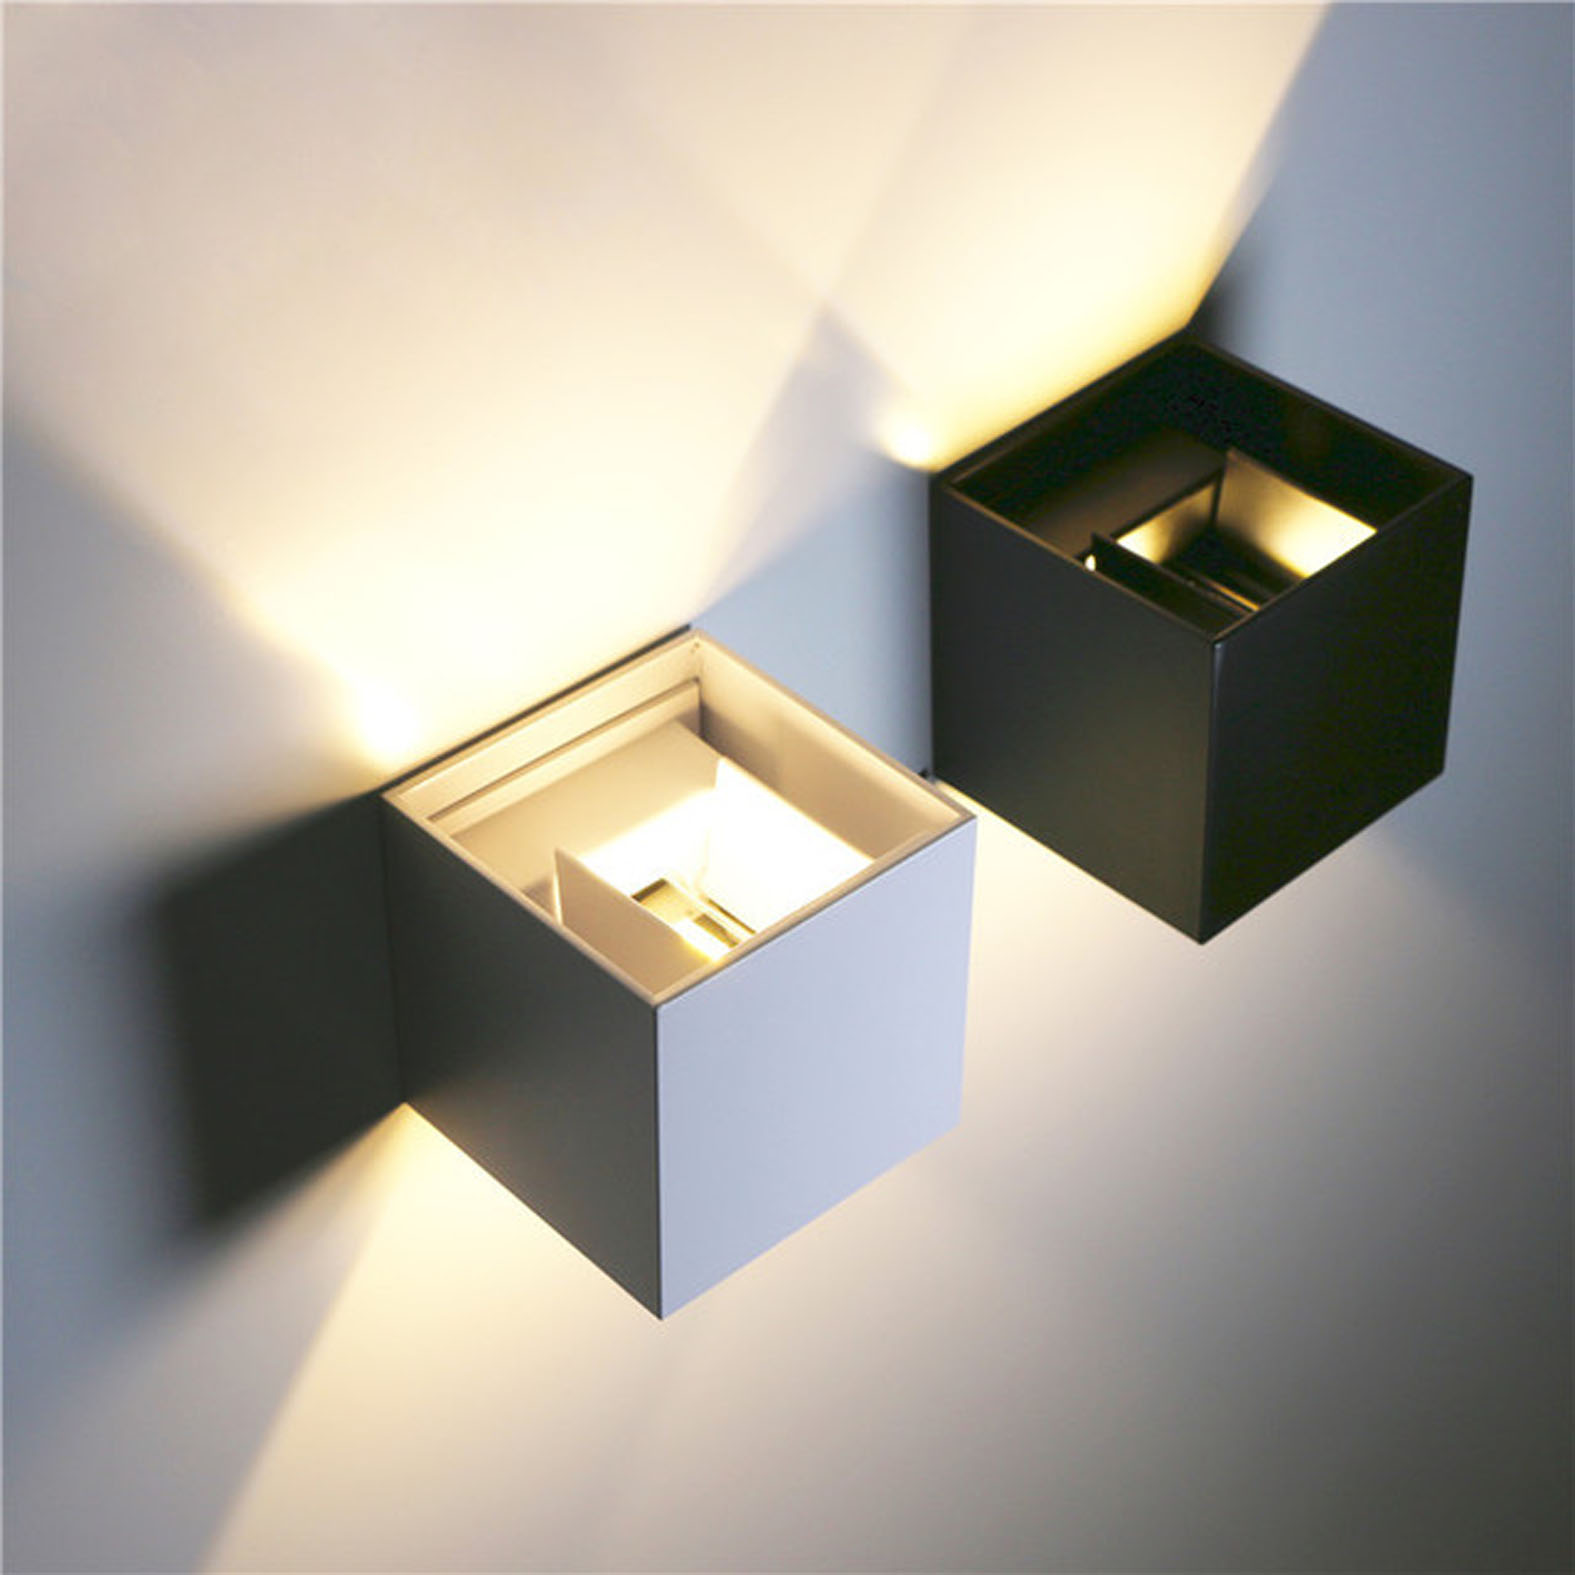 Outdoor Waterproof IP65 Wall Sconces porch light Up and Down lamparas de pared 6W Modern 120V 240V 1pcs coffee table